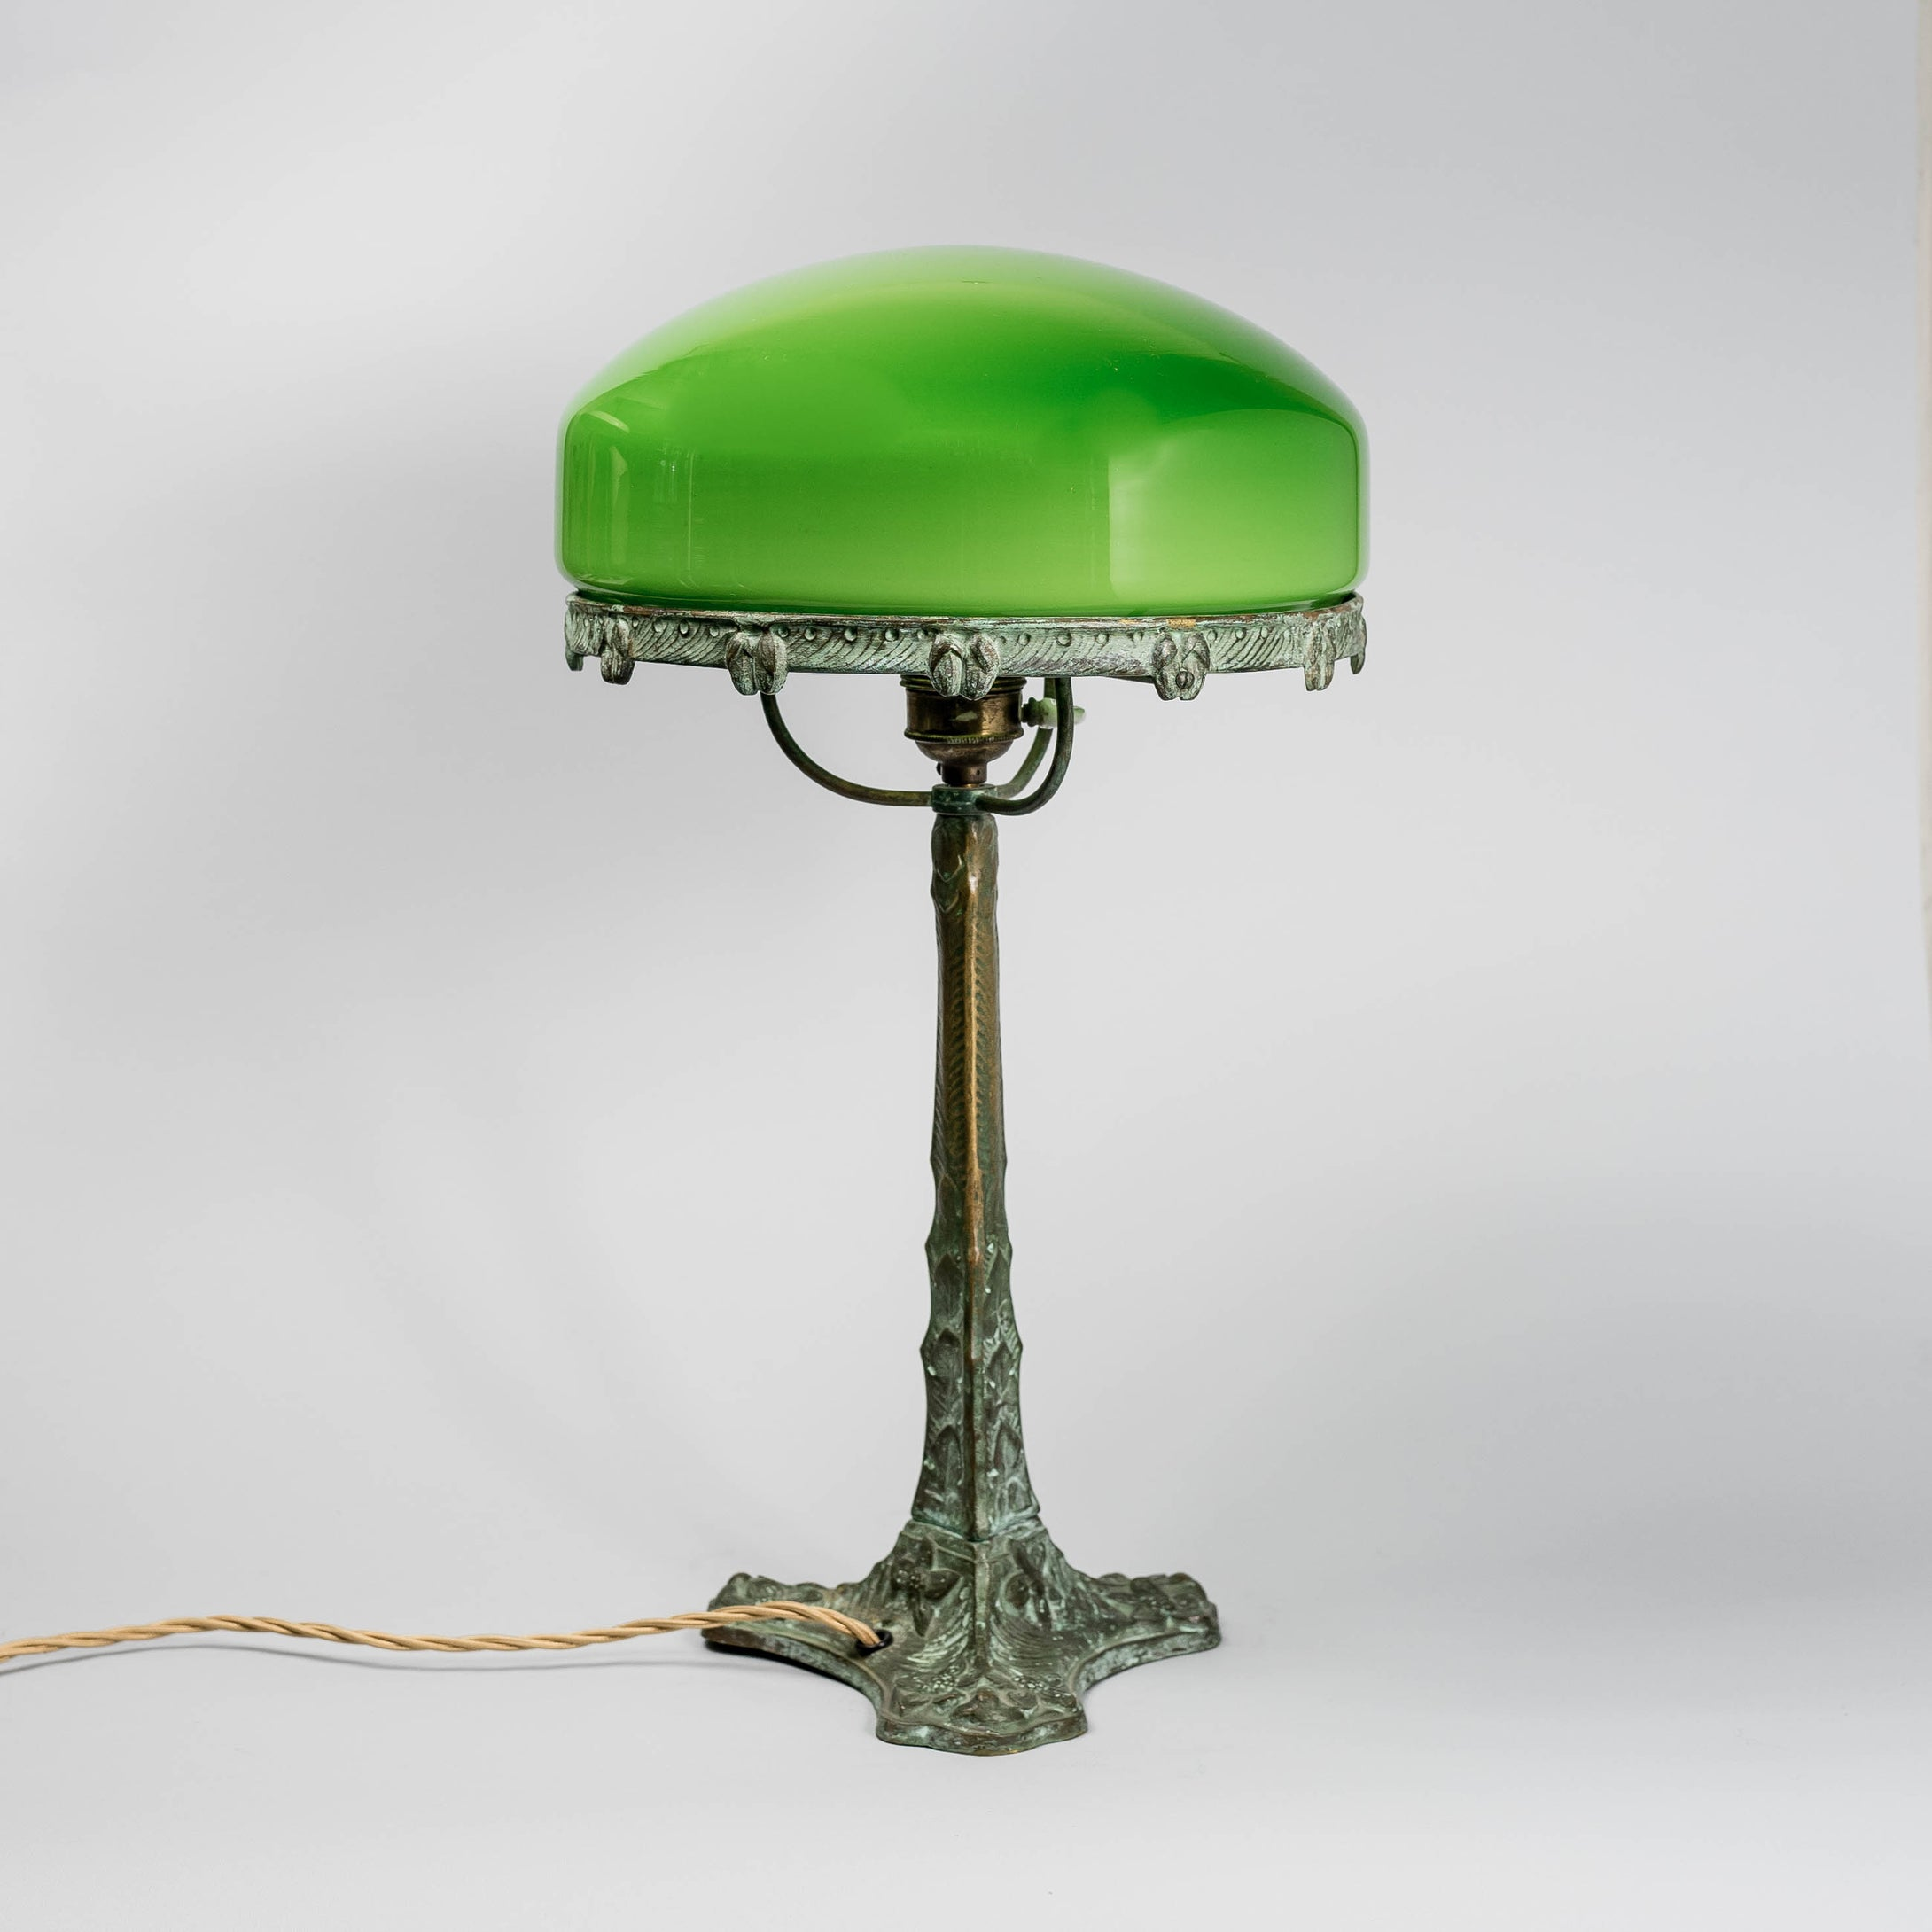 Jugendbordslampa i patinerad brons från Böhlmarks, 1910-tal. 43cm hög An art nouveau table lamp in bronze. Made by Böhlmarks around 1910. H: 43cm/16,9″